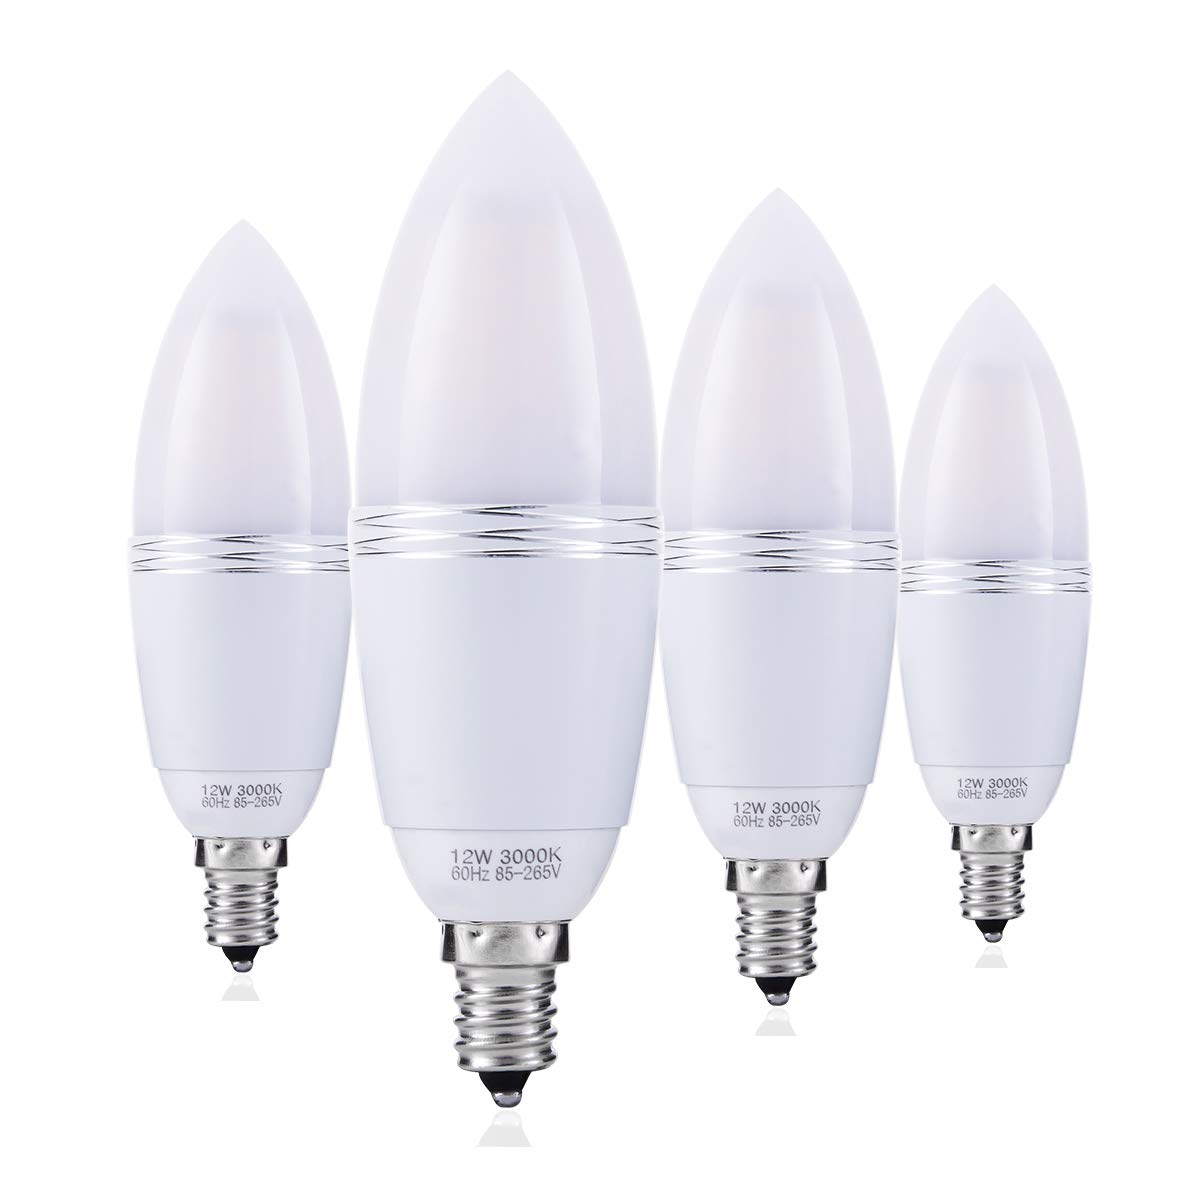 YRLighting Electrophoretic E12 LED Bulbs, 12W LED Candelabra Bulb 100 Watt Equivalent, 1200lm, Decorative Candle Base E12 Non-Dimmable LED Chandelier Bulbs, Warm White 3000k LED Lamp, Pack of 4